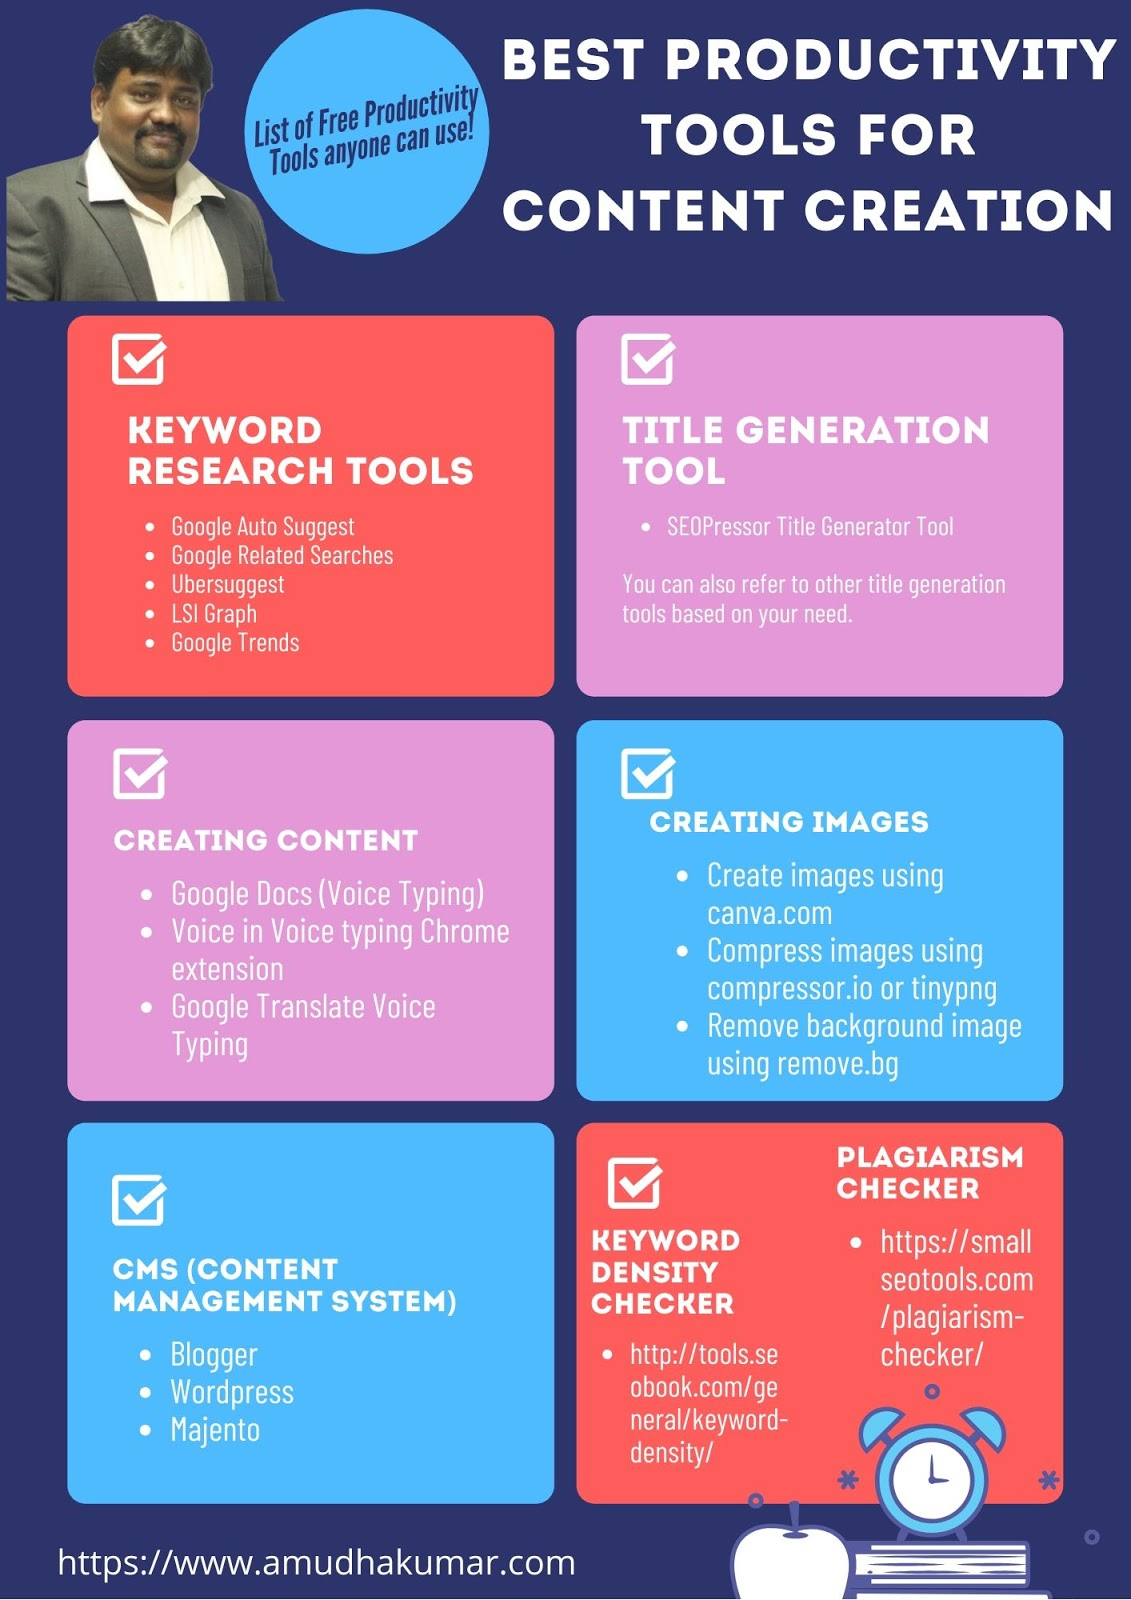 Best Productivity tools for Content Creation info graph